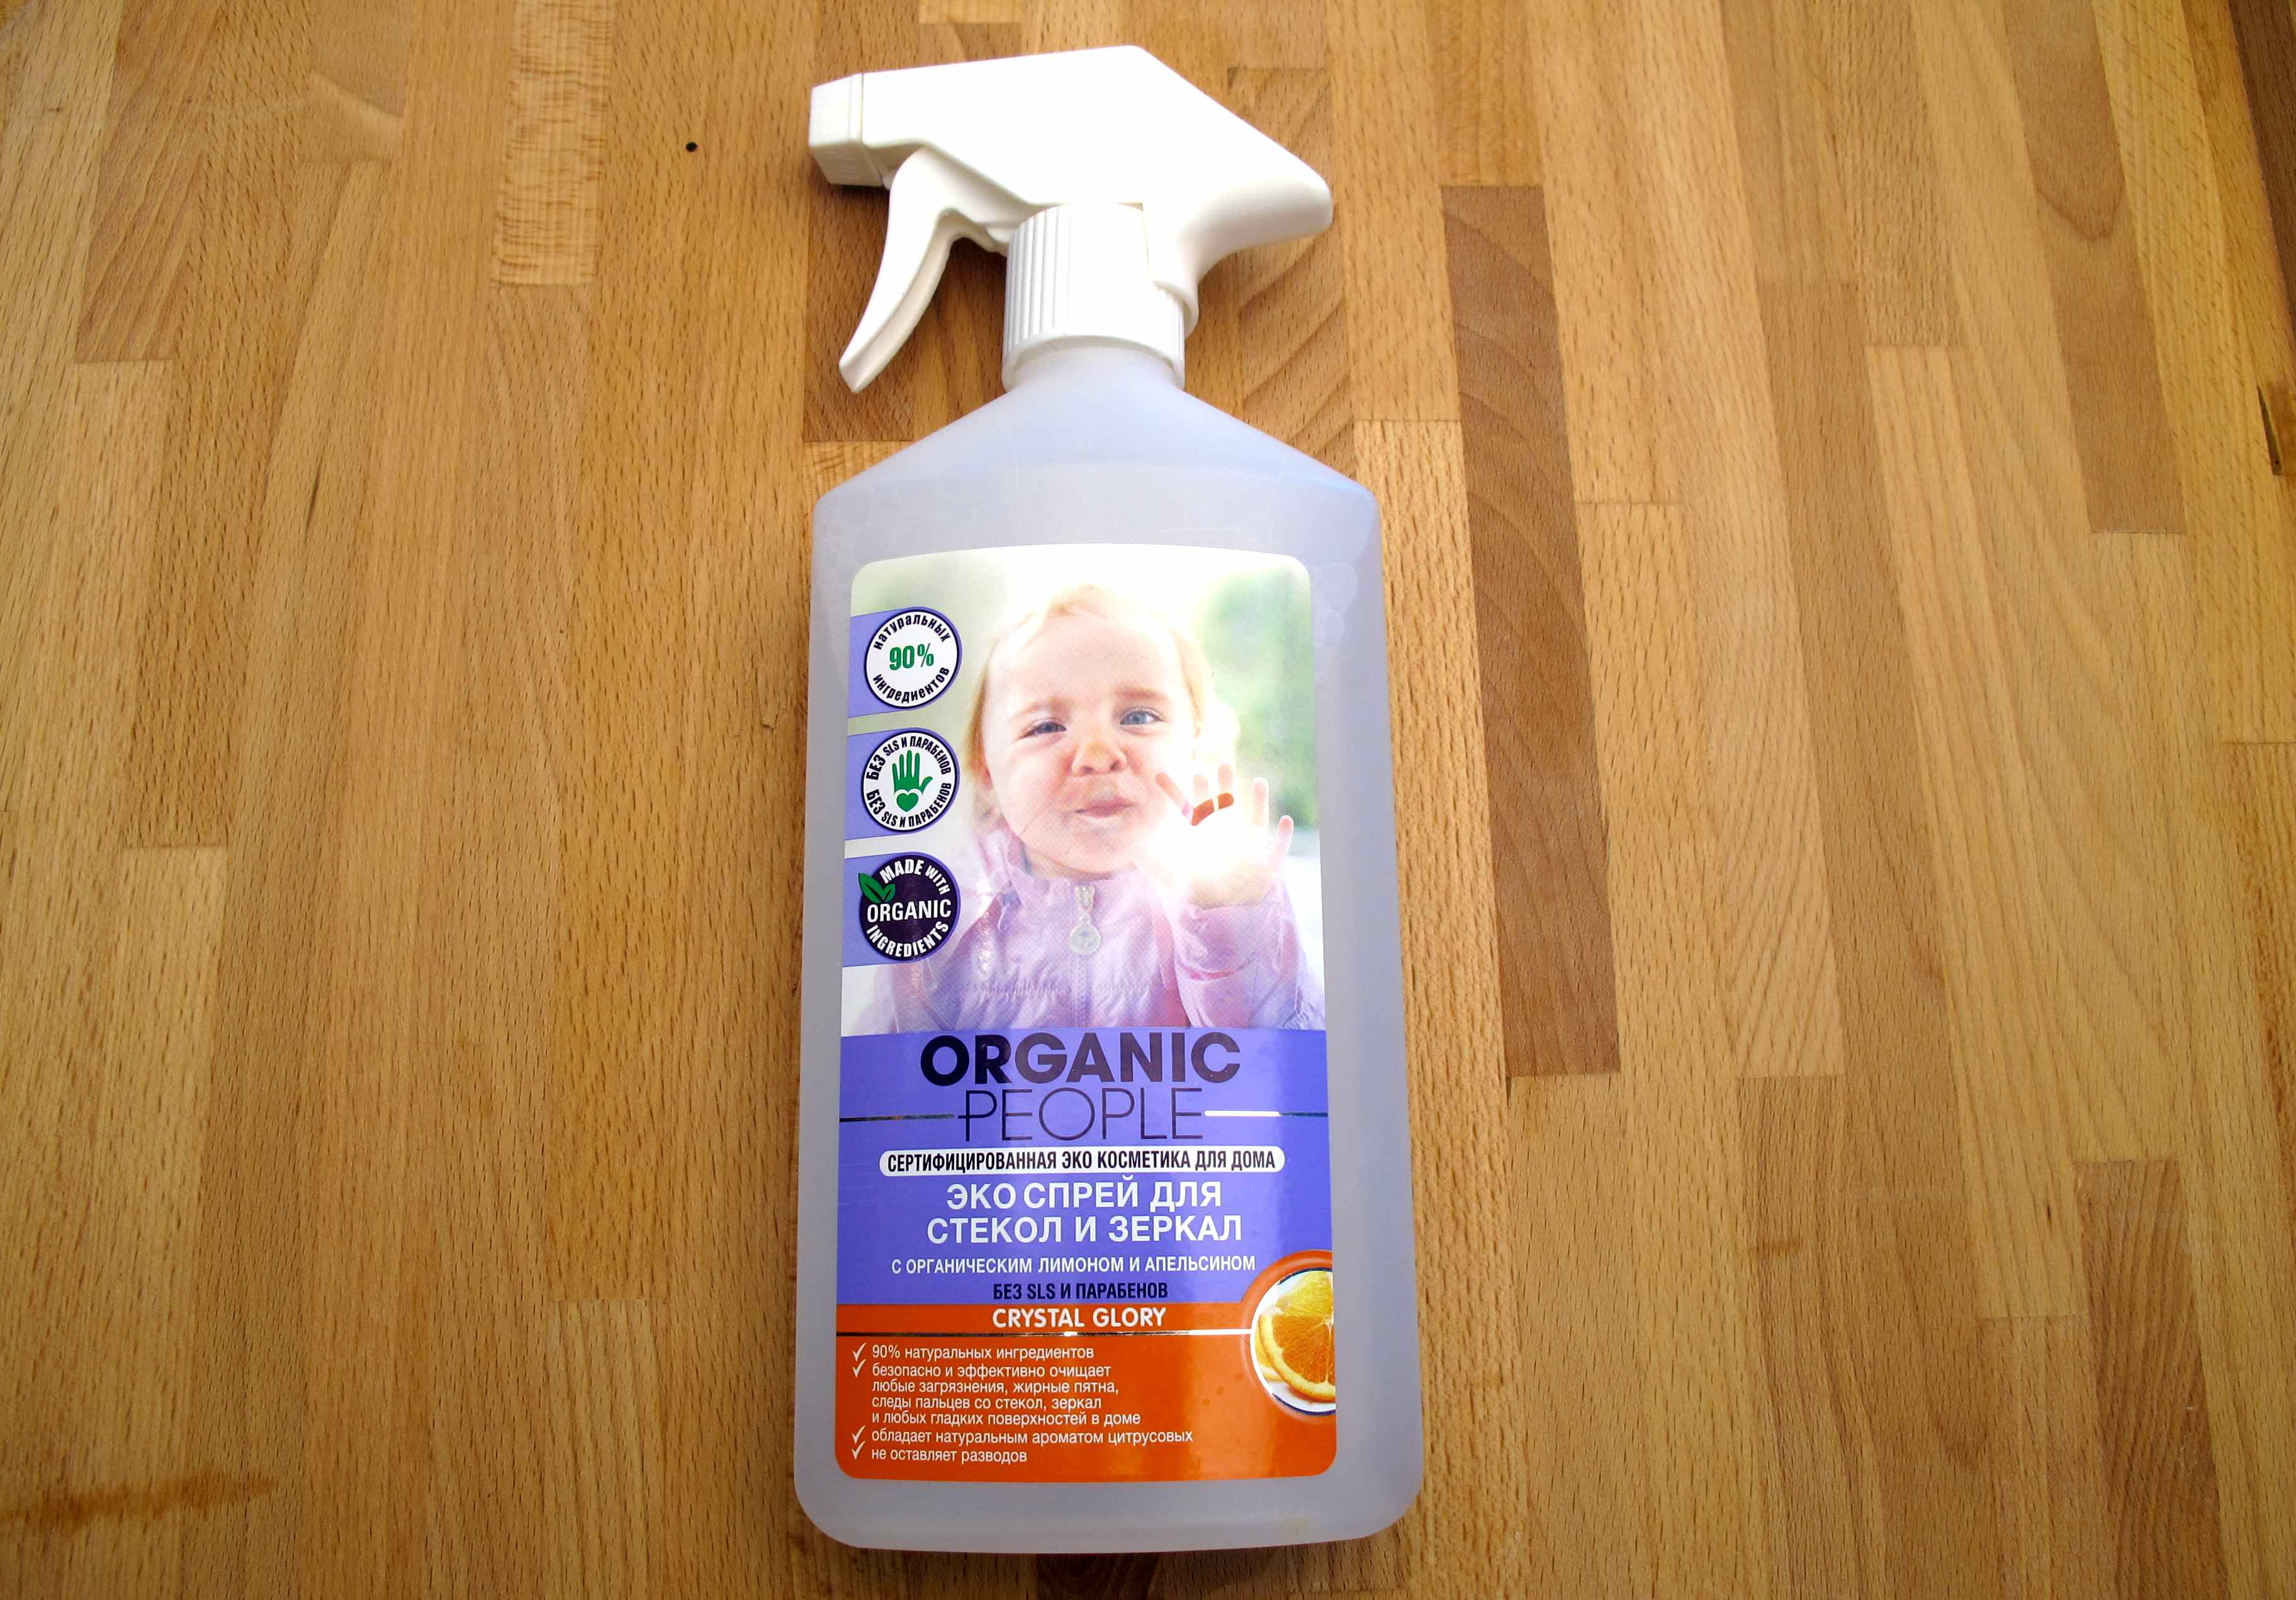 Organic People glass mirror cleaner